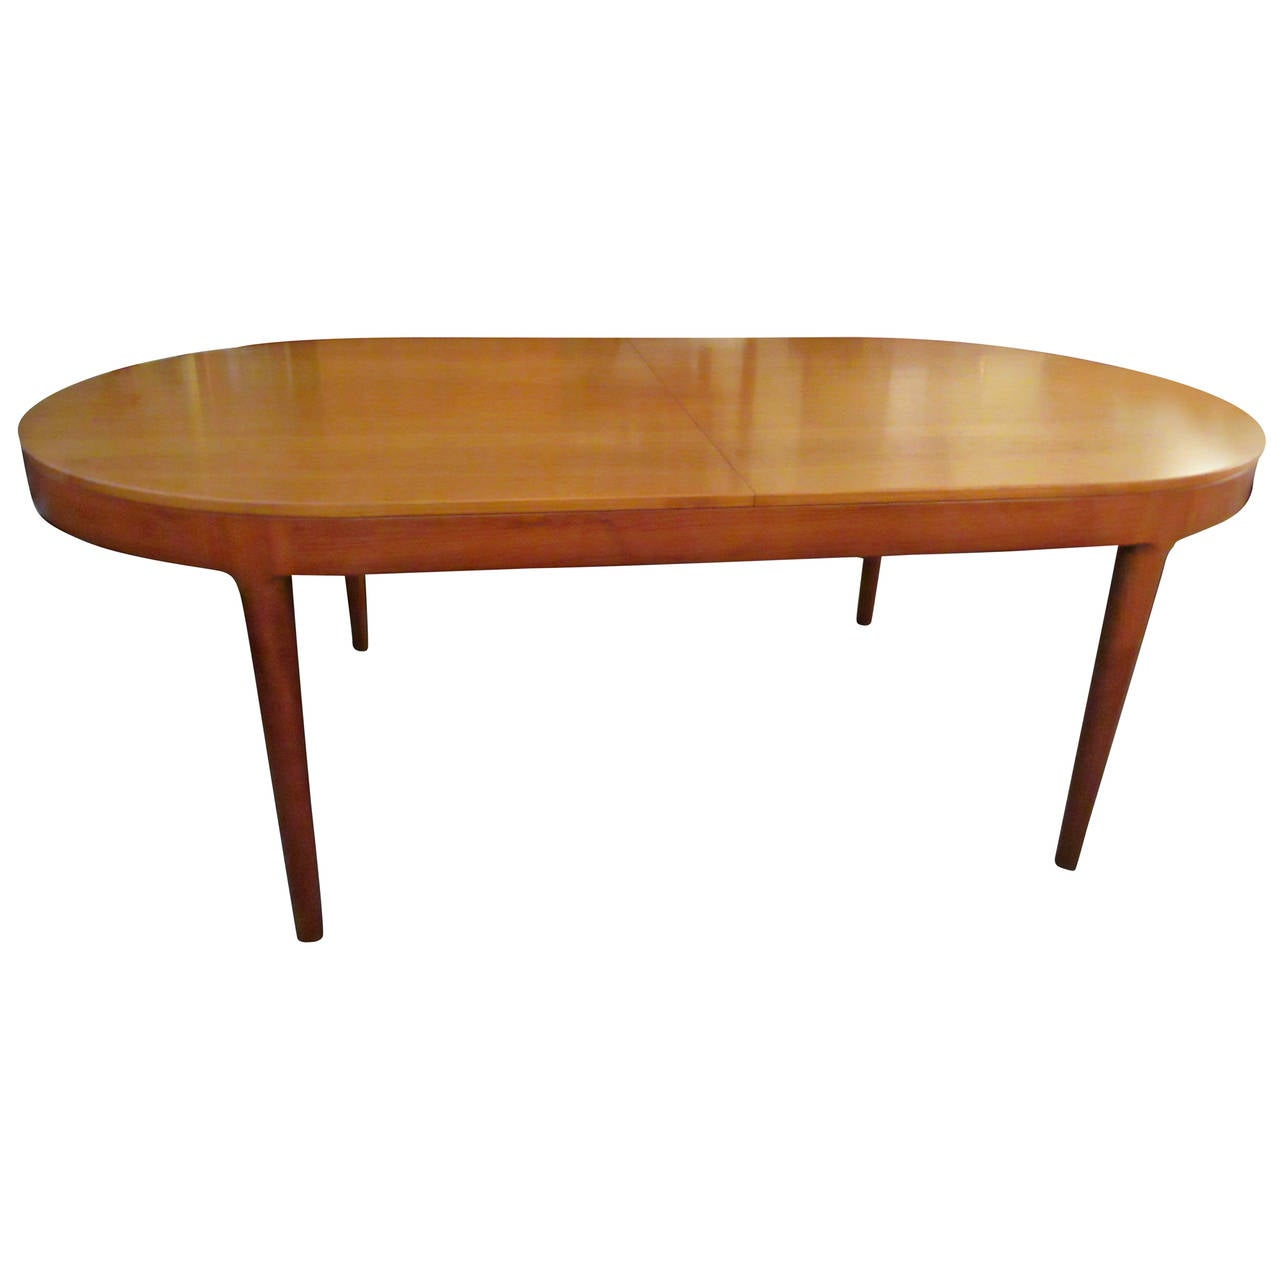 Moreddi oval danish teak dining table at 1stdibs for Oval dining table